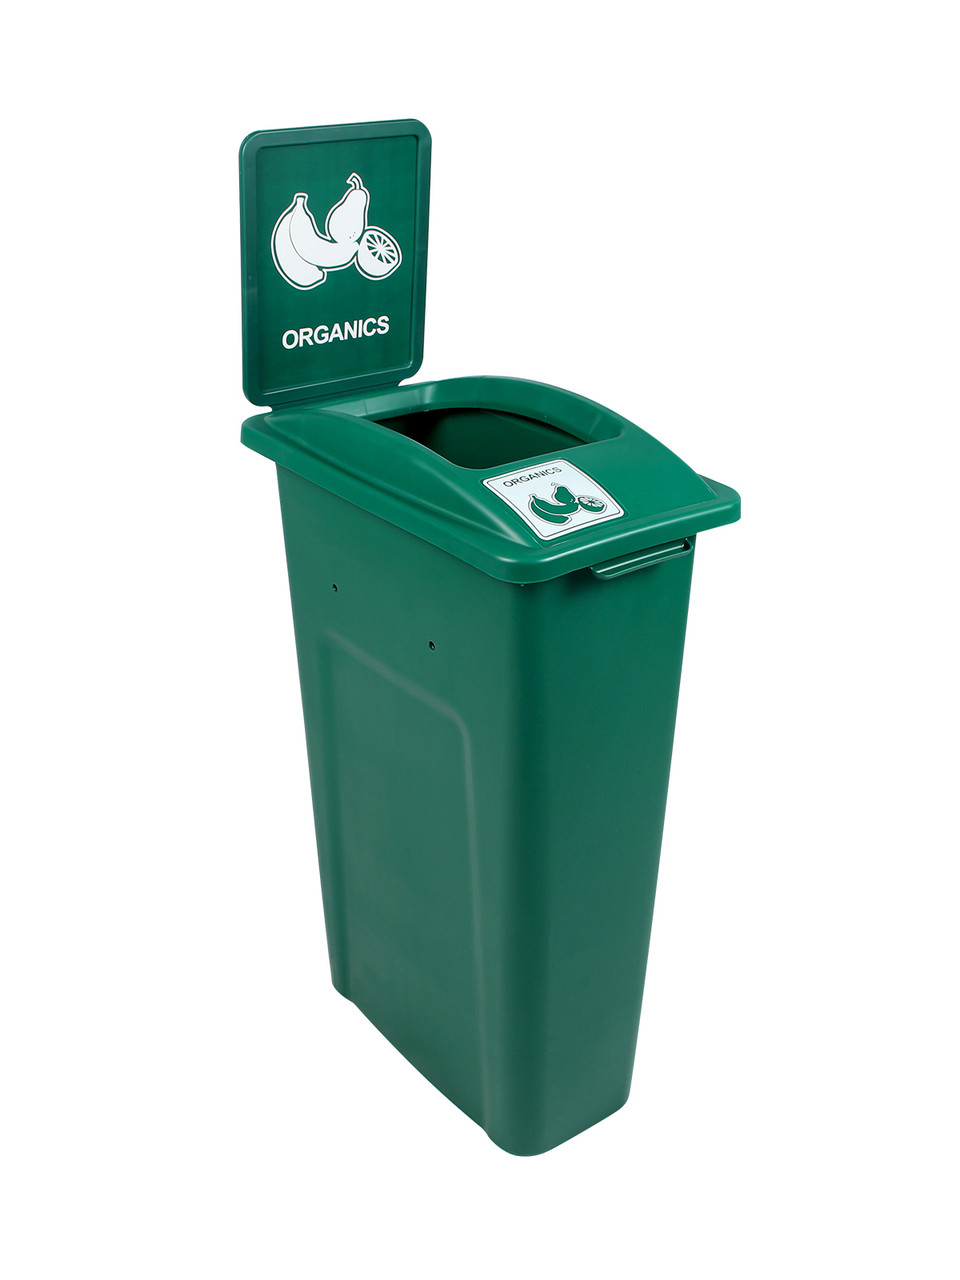 23 Gallon Skinny Simple Sort Compost Bin with Sign (Open Top, Organics)